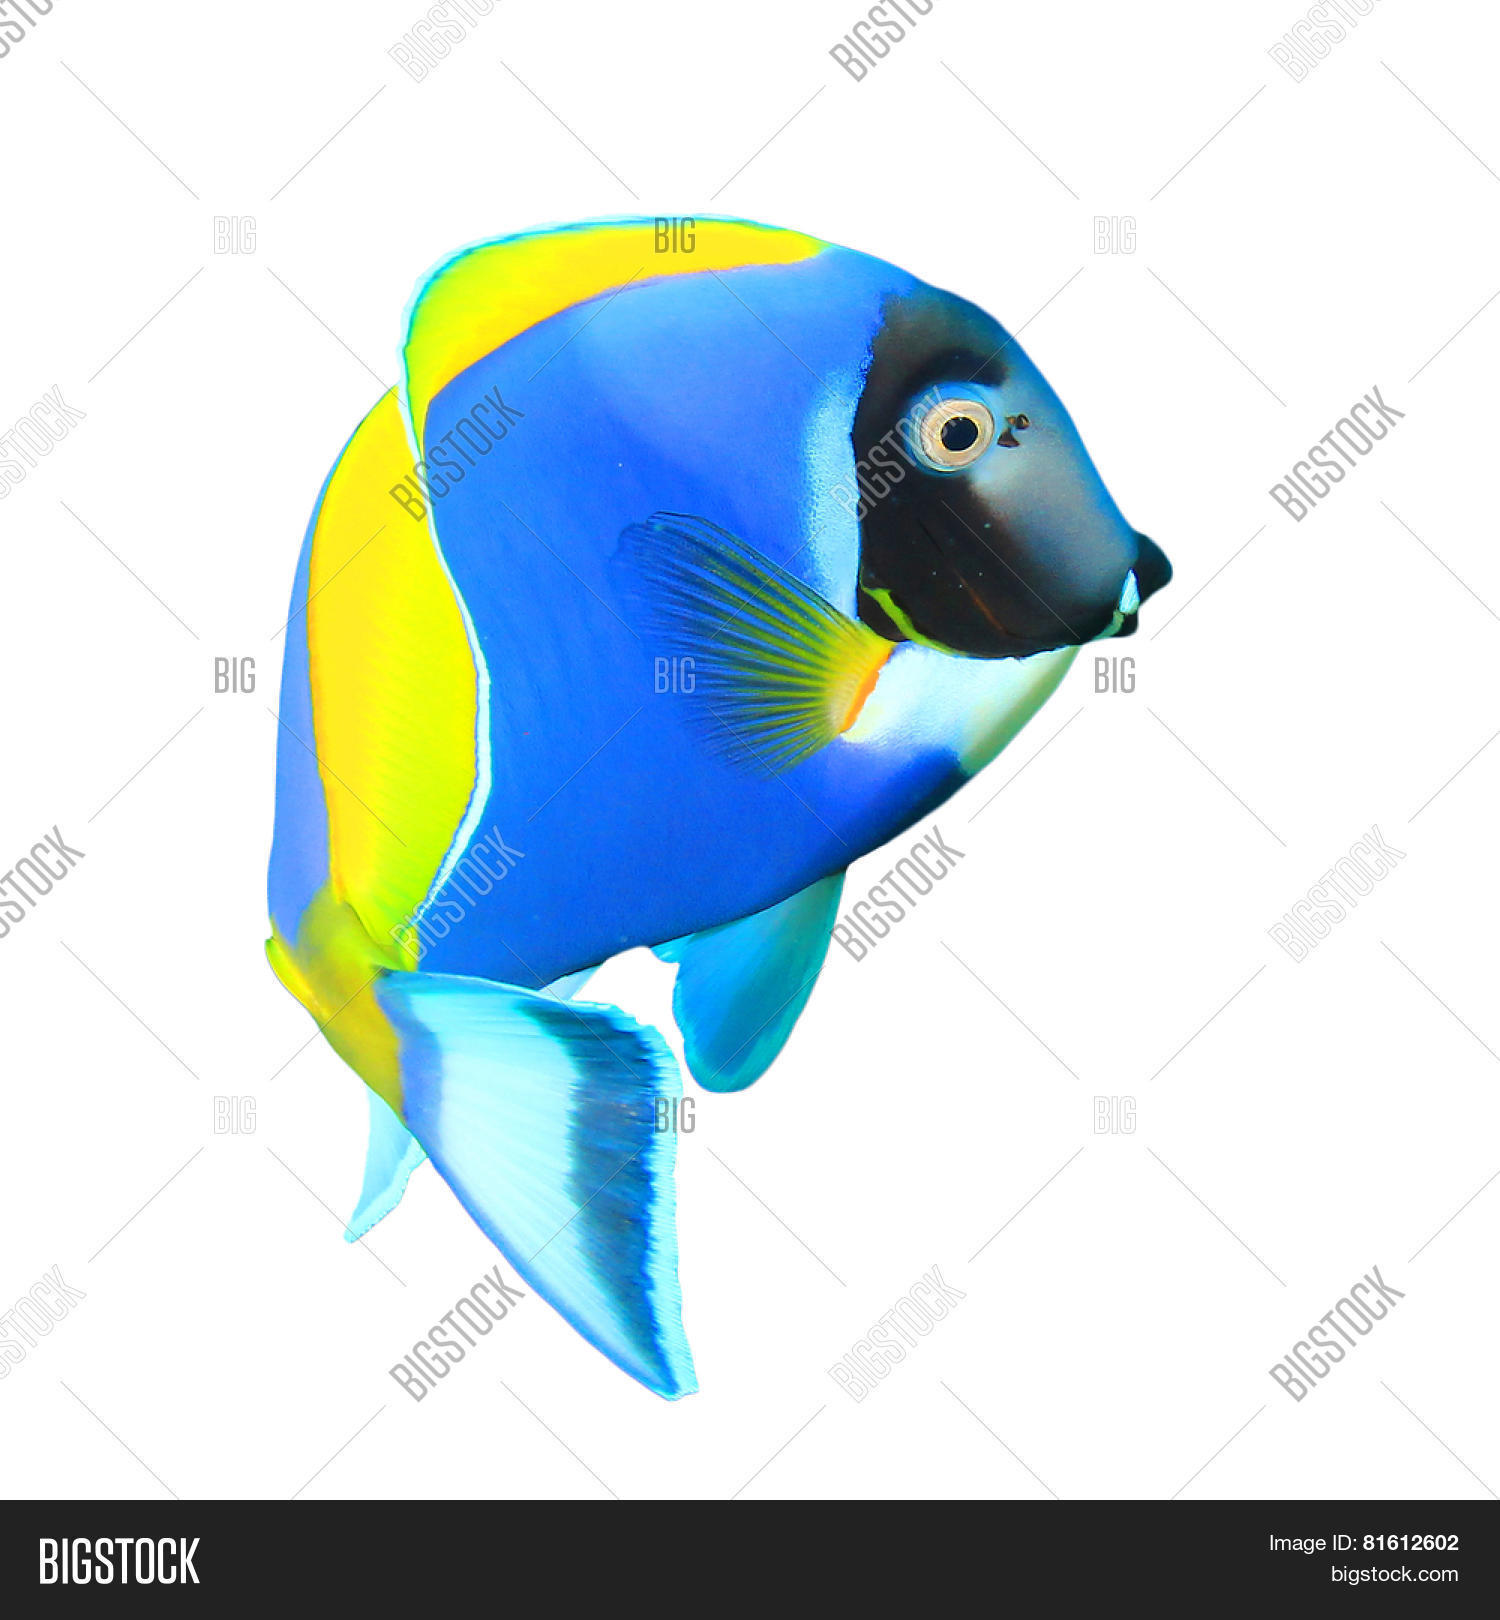 Tropical Fish Isolated Image & Photo (Free Trial) | Bigstock